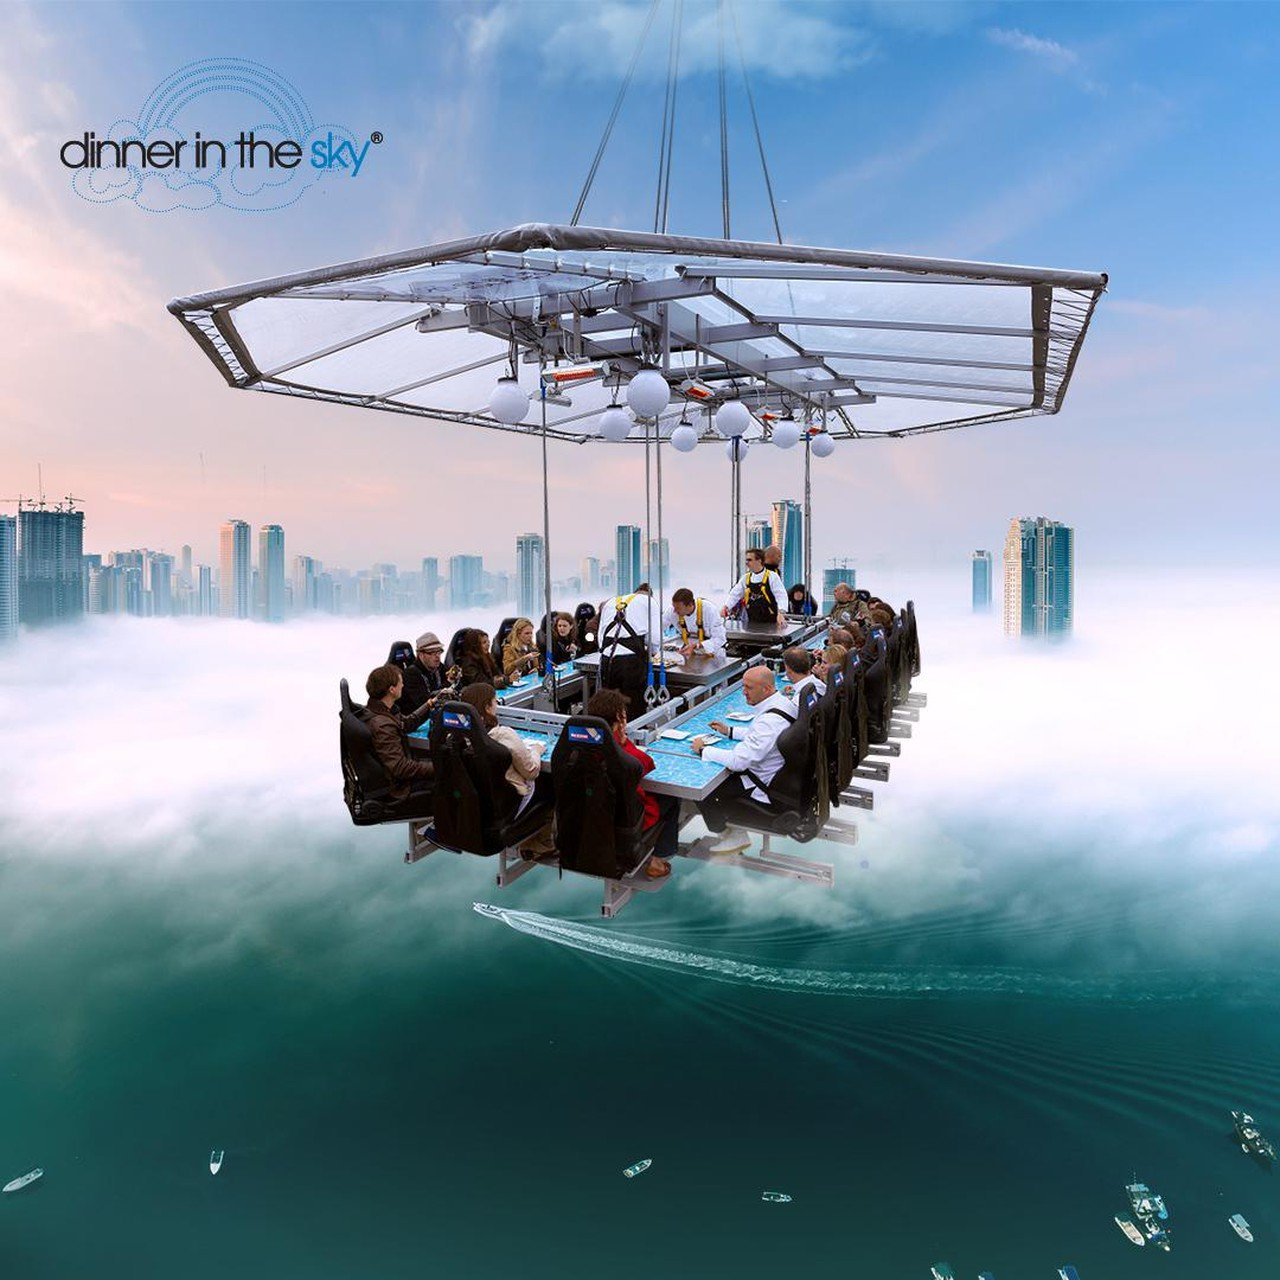 Hamburg corporate event venues Besonders Dinner in the sky image 3